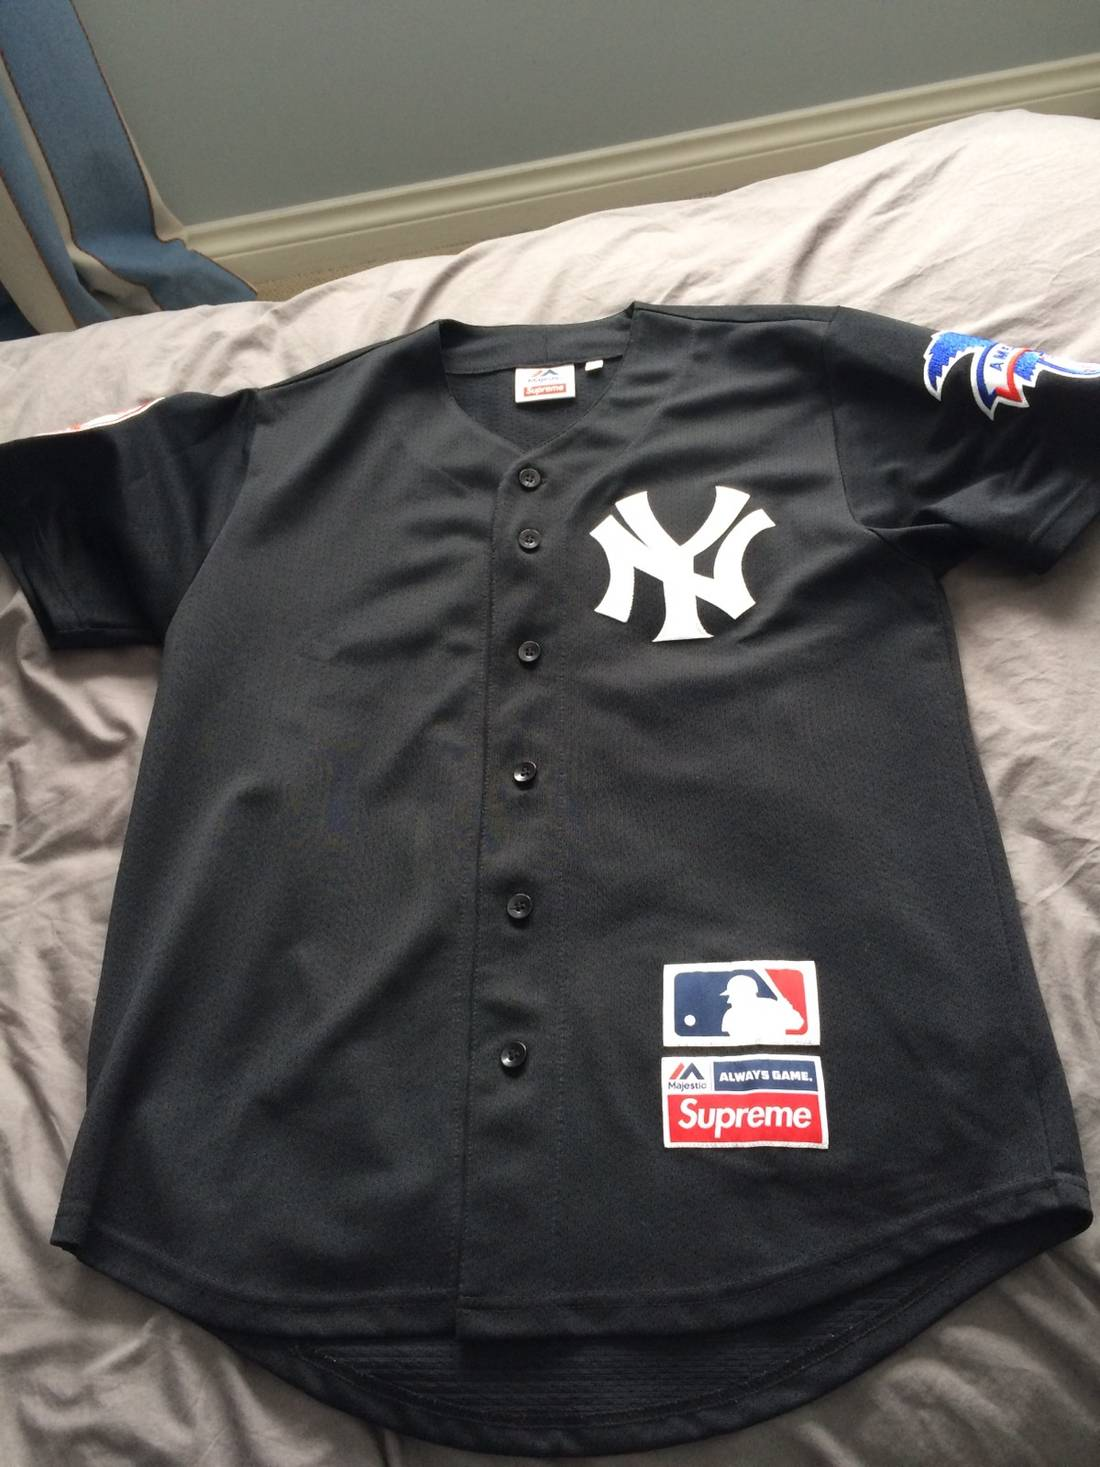 finest selection 3e9f7 cb857 new york yankees jersey europe